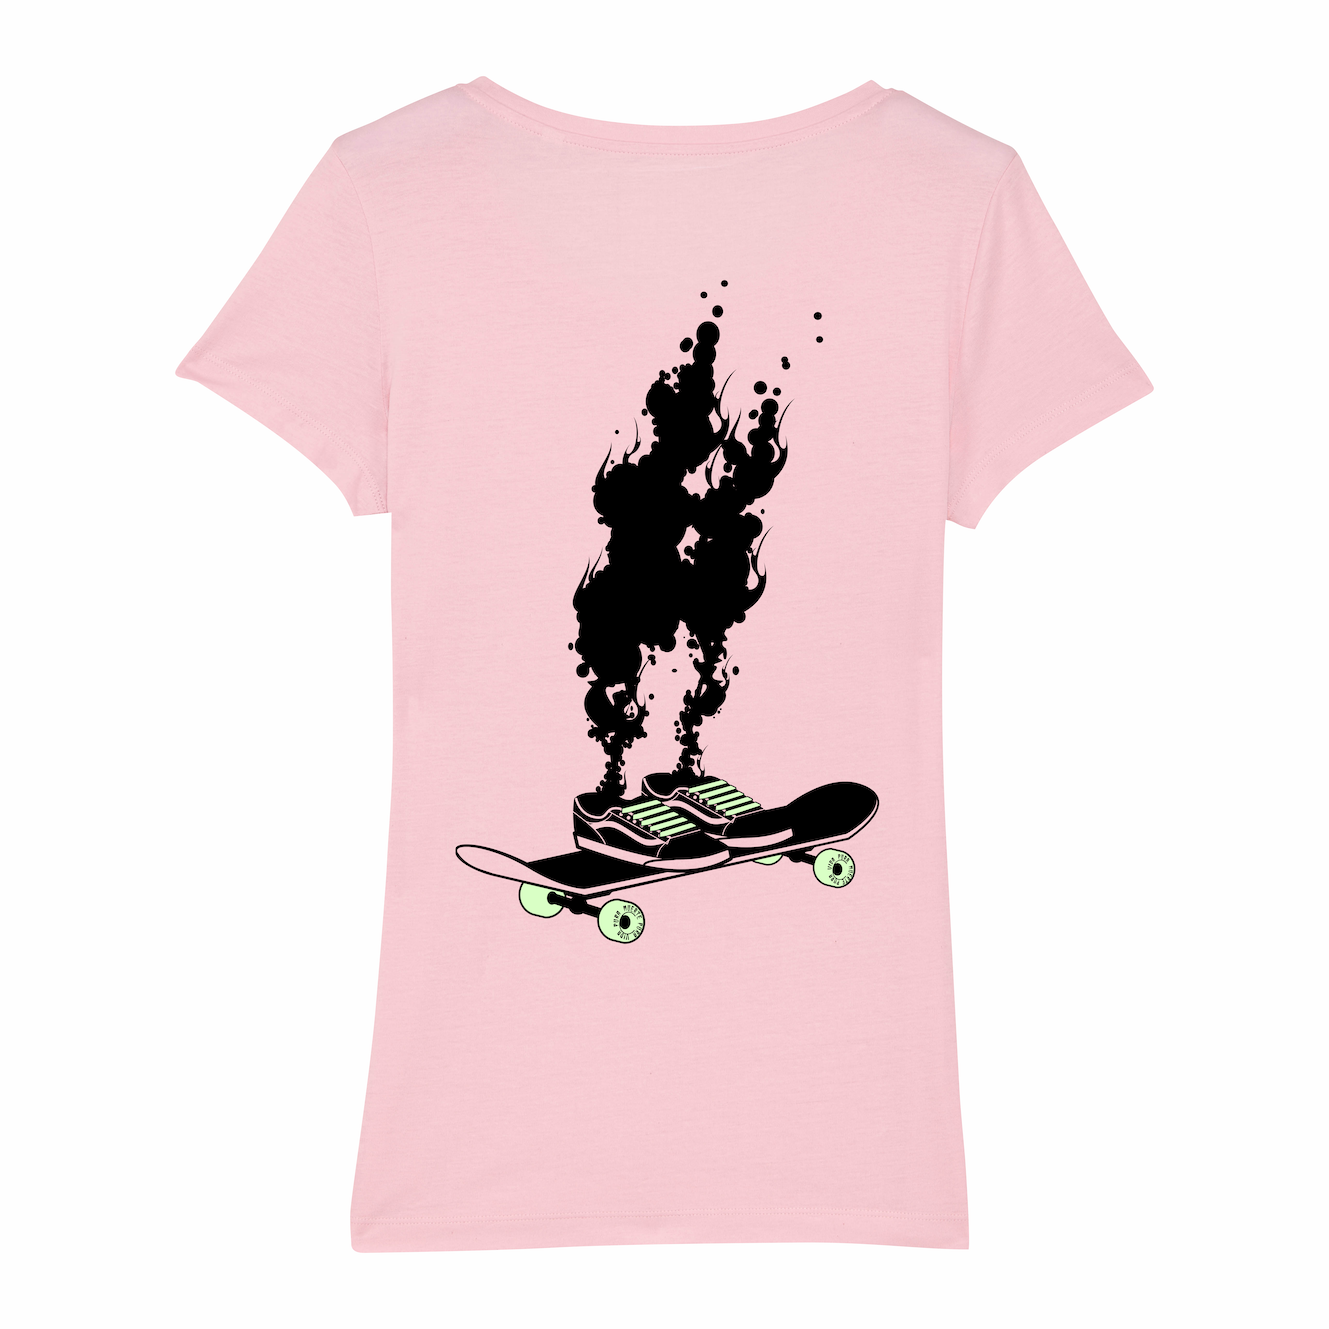 Skate T-shirt women, spontaneous combustion, pink